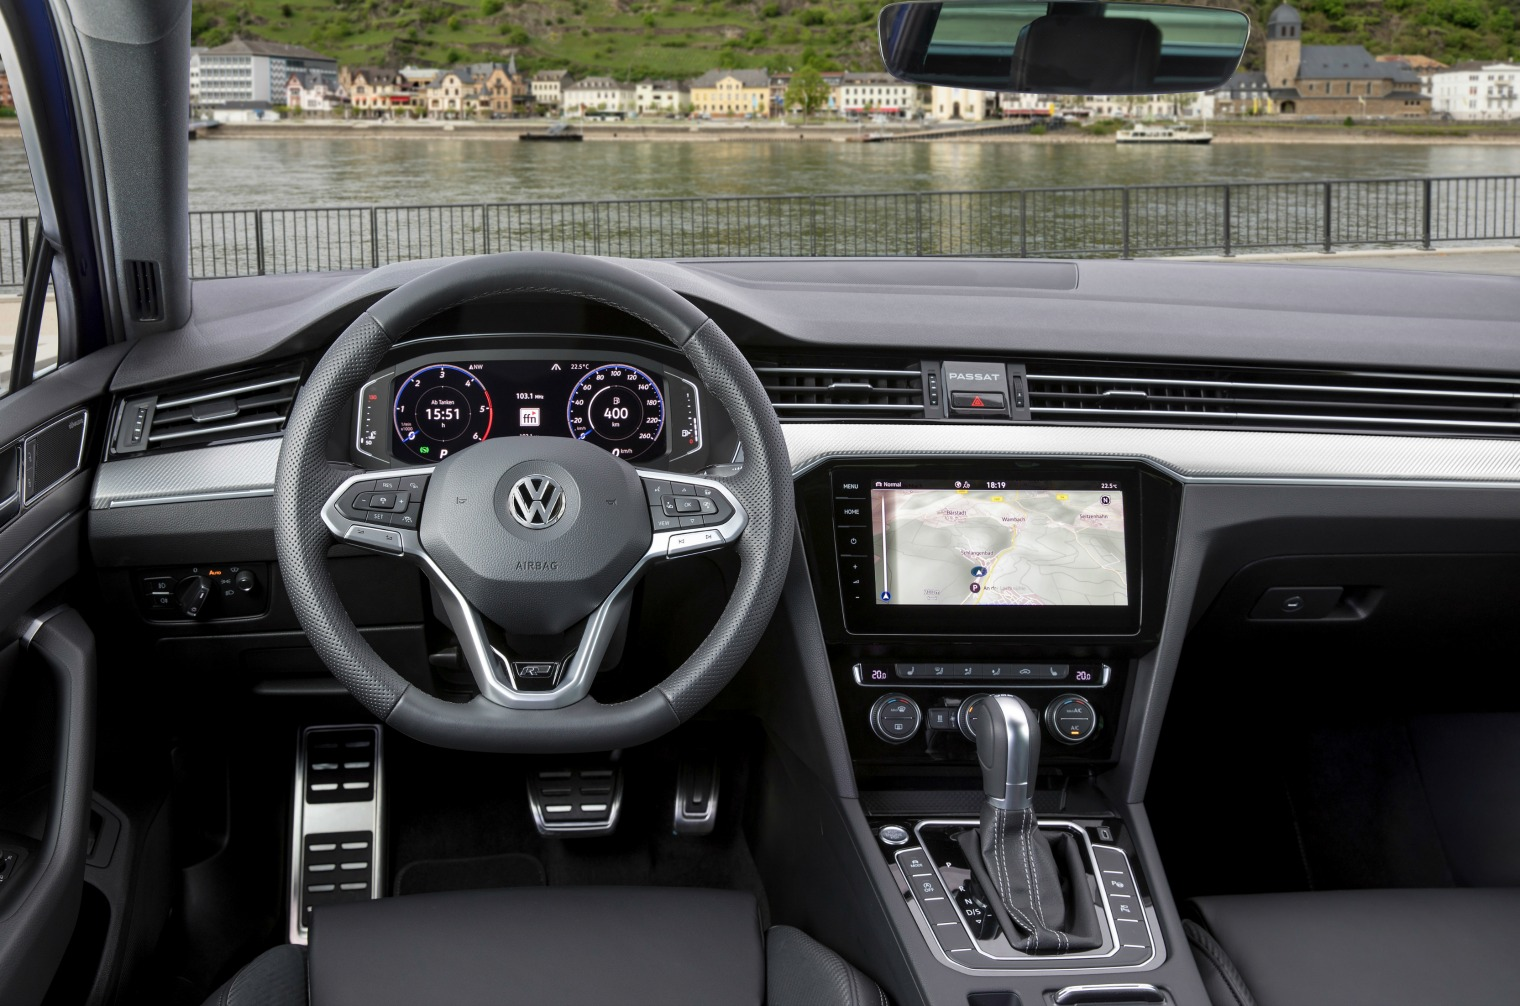 The new Volkswagen Passat Variant R-Line